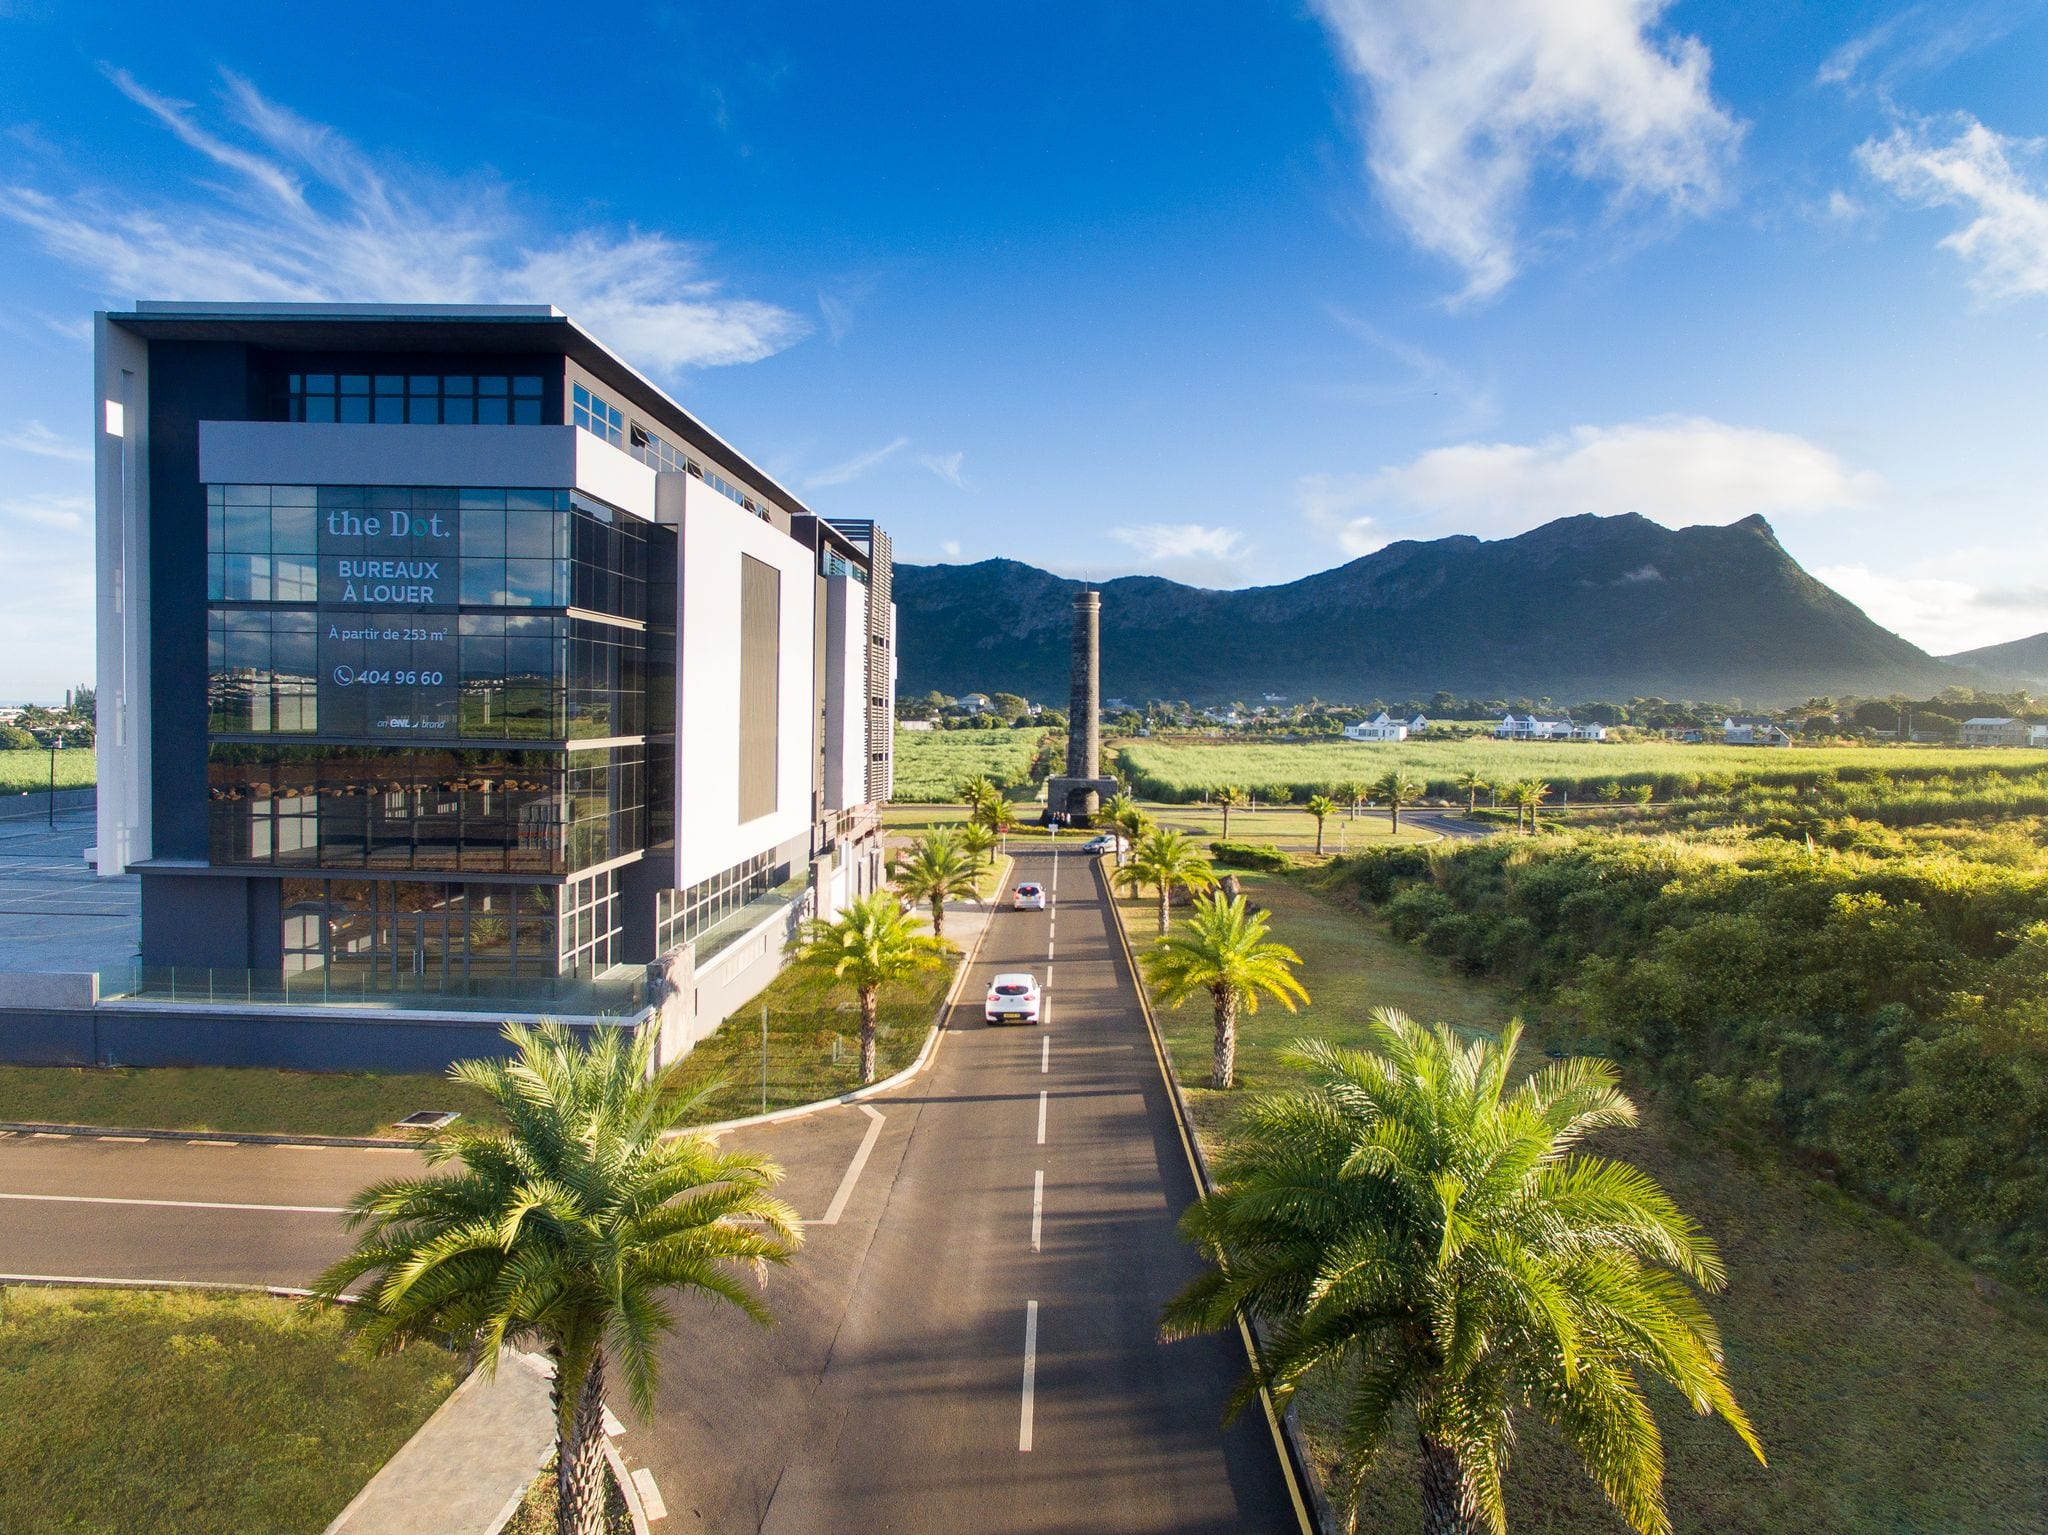 offices for rent, work in moka, bowmans, The Dot, moka smart city,mount ory